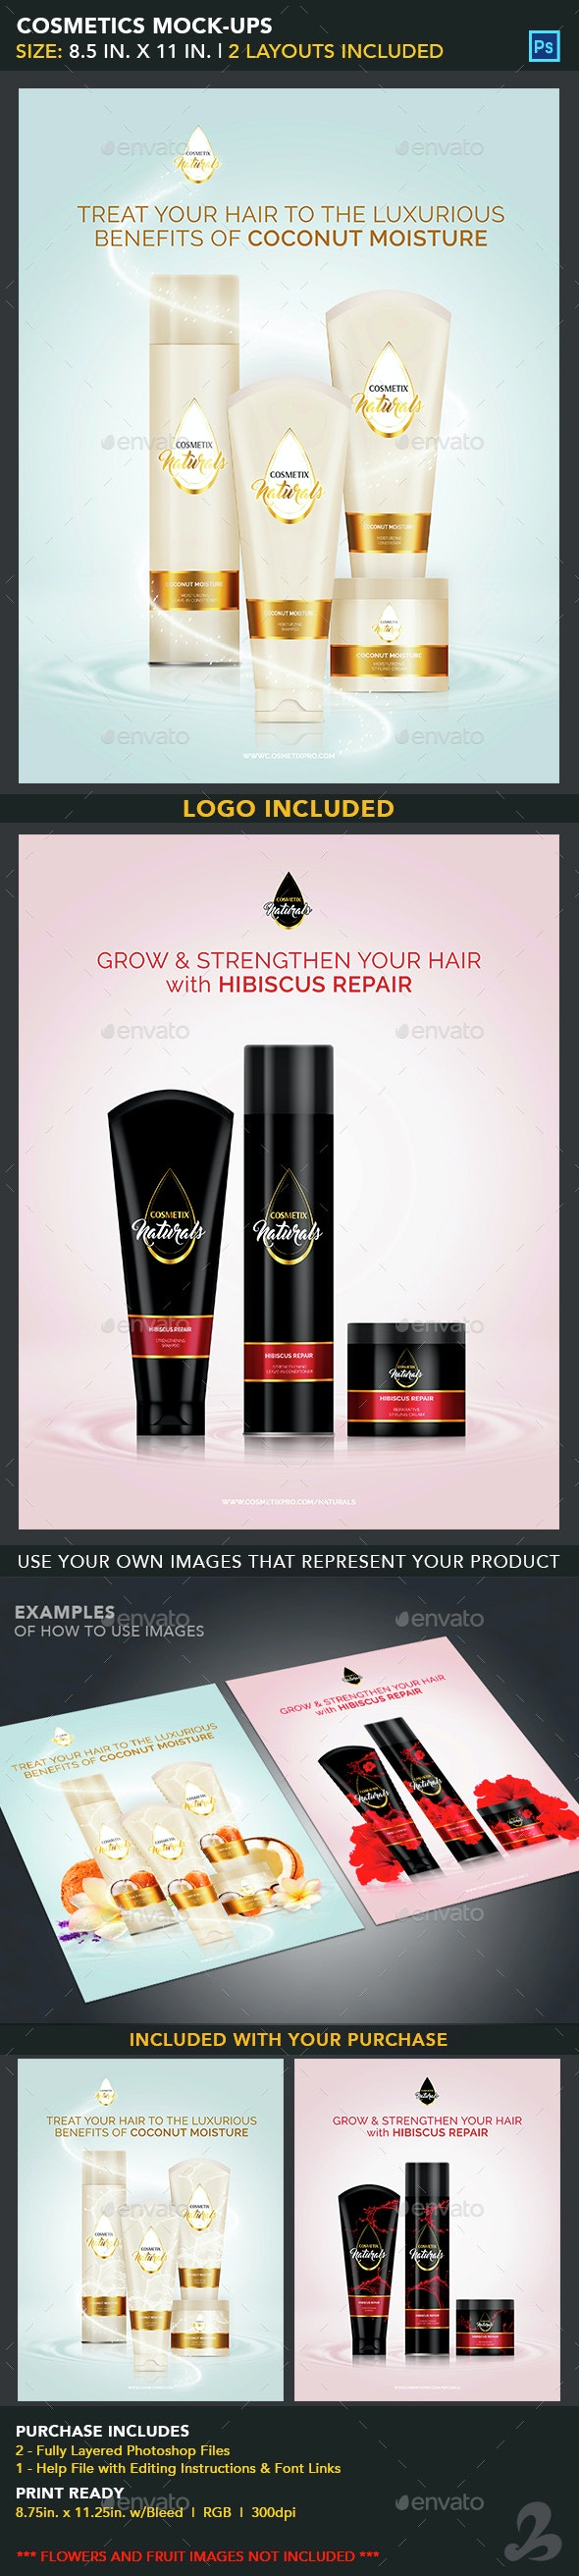 Cosmetics Mock-Ups - Product Mock-Ups Graphics